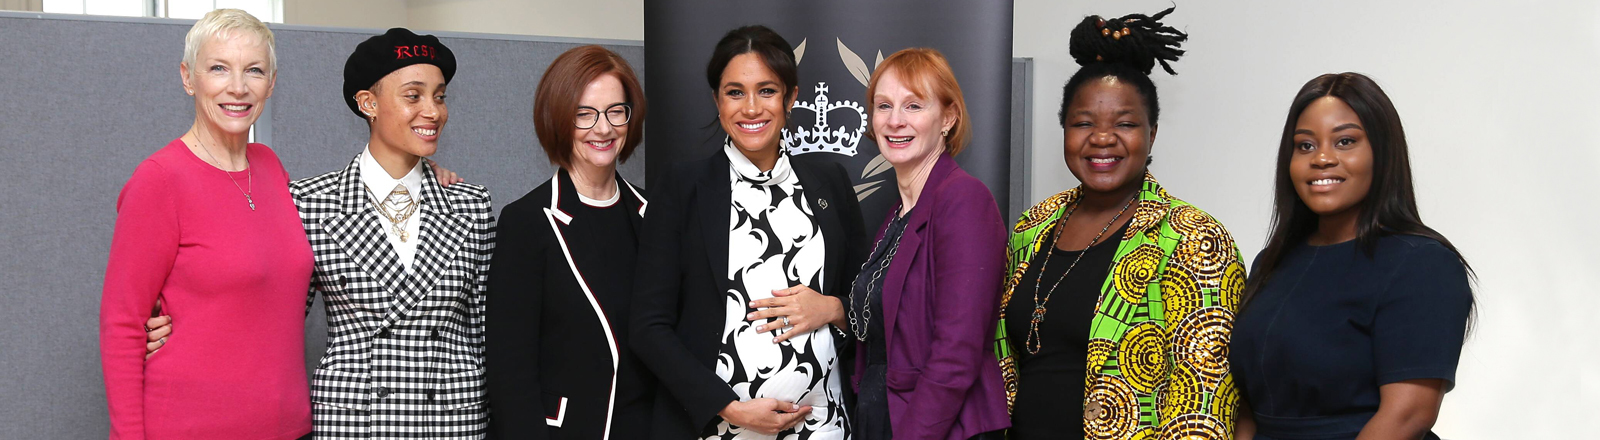 British singer Annie Lennox, British model Adwoa Aboah, former Australian Prime Minister Julia Gillard, Meghan Markle, Duchess of Sussex, British journalist Anne McElvoy, Camfed Regional Director Zimbabwe s Angeline Murimirwa and British campaigner Chrisann Jarrett take part in a panel discussion in London, convened by the Queen s Commonwealth Trust to mark International Women s Day